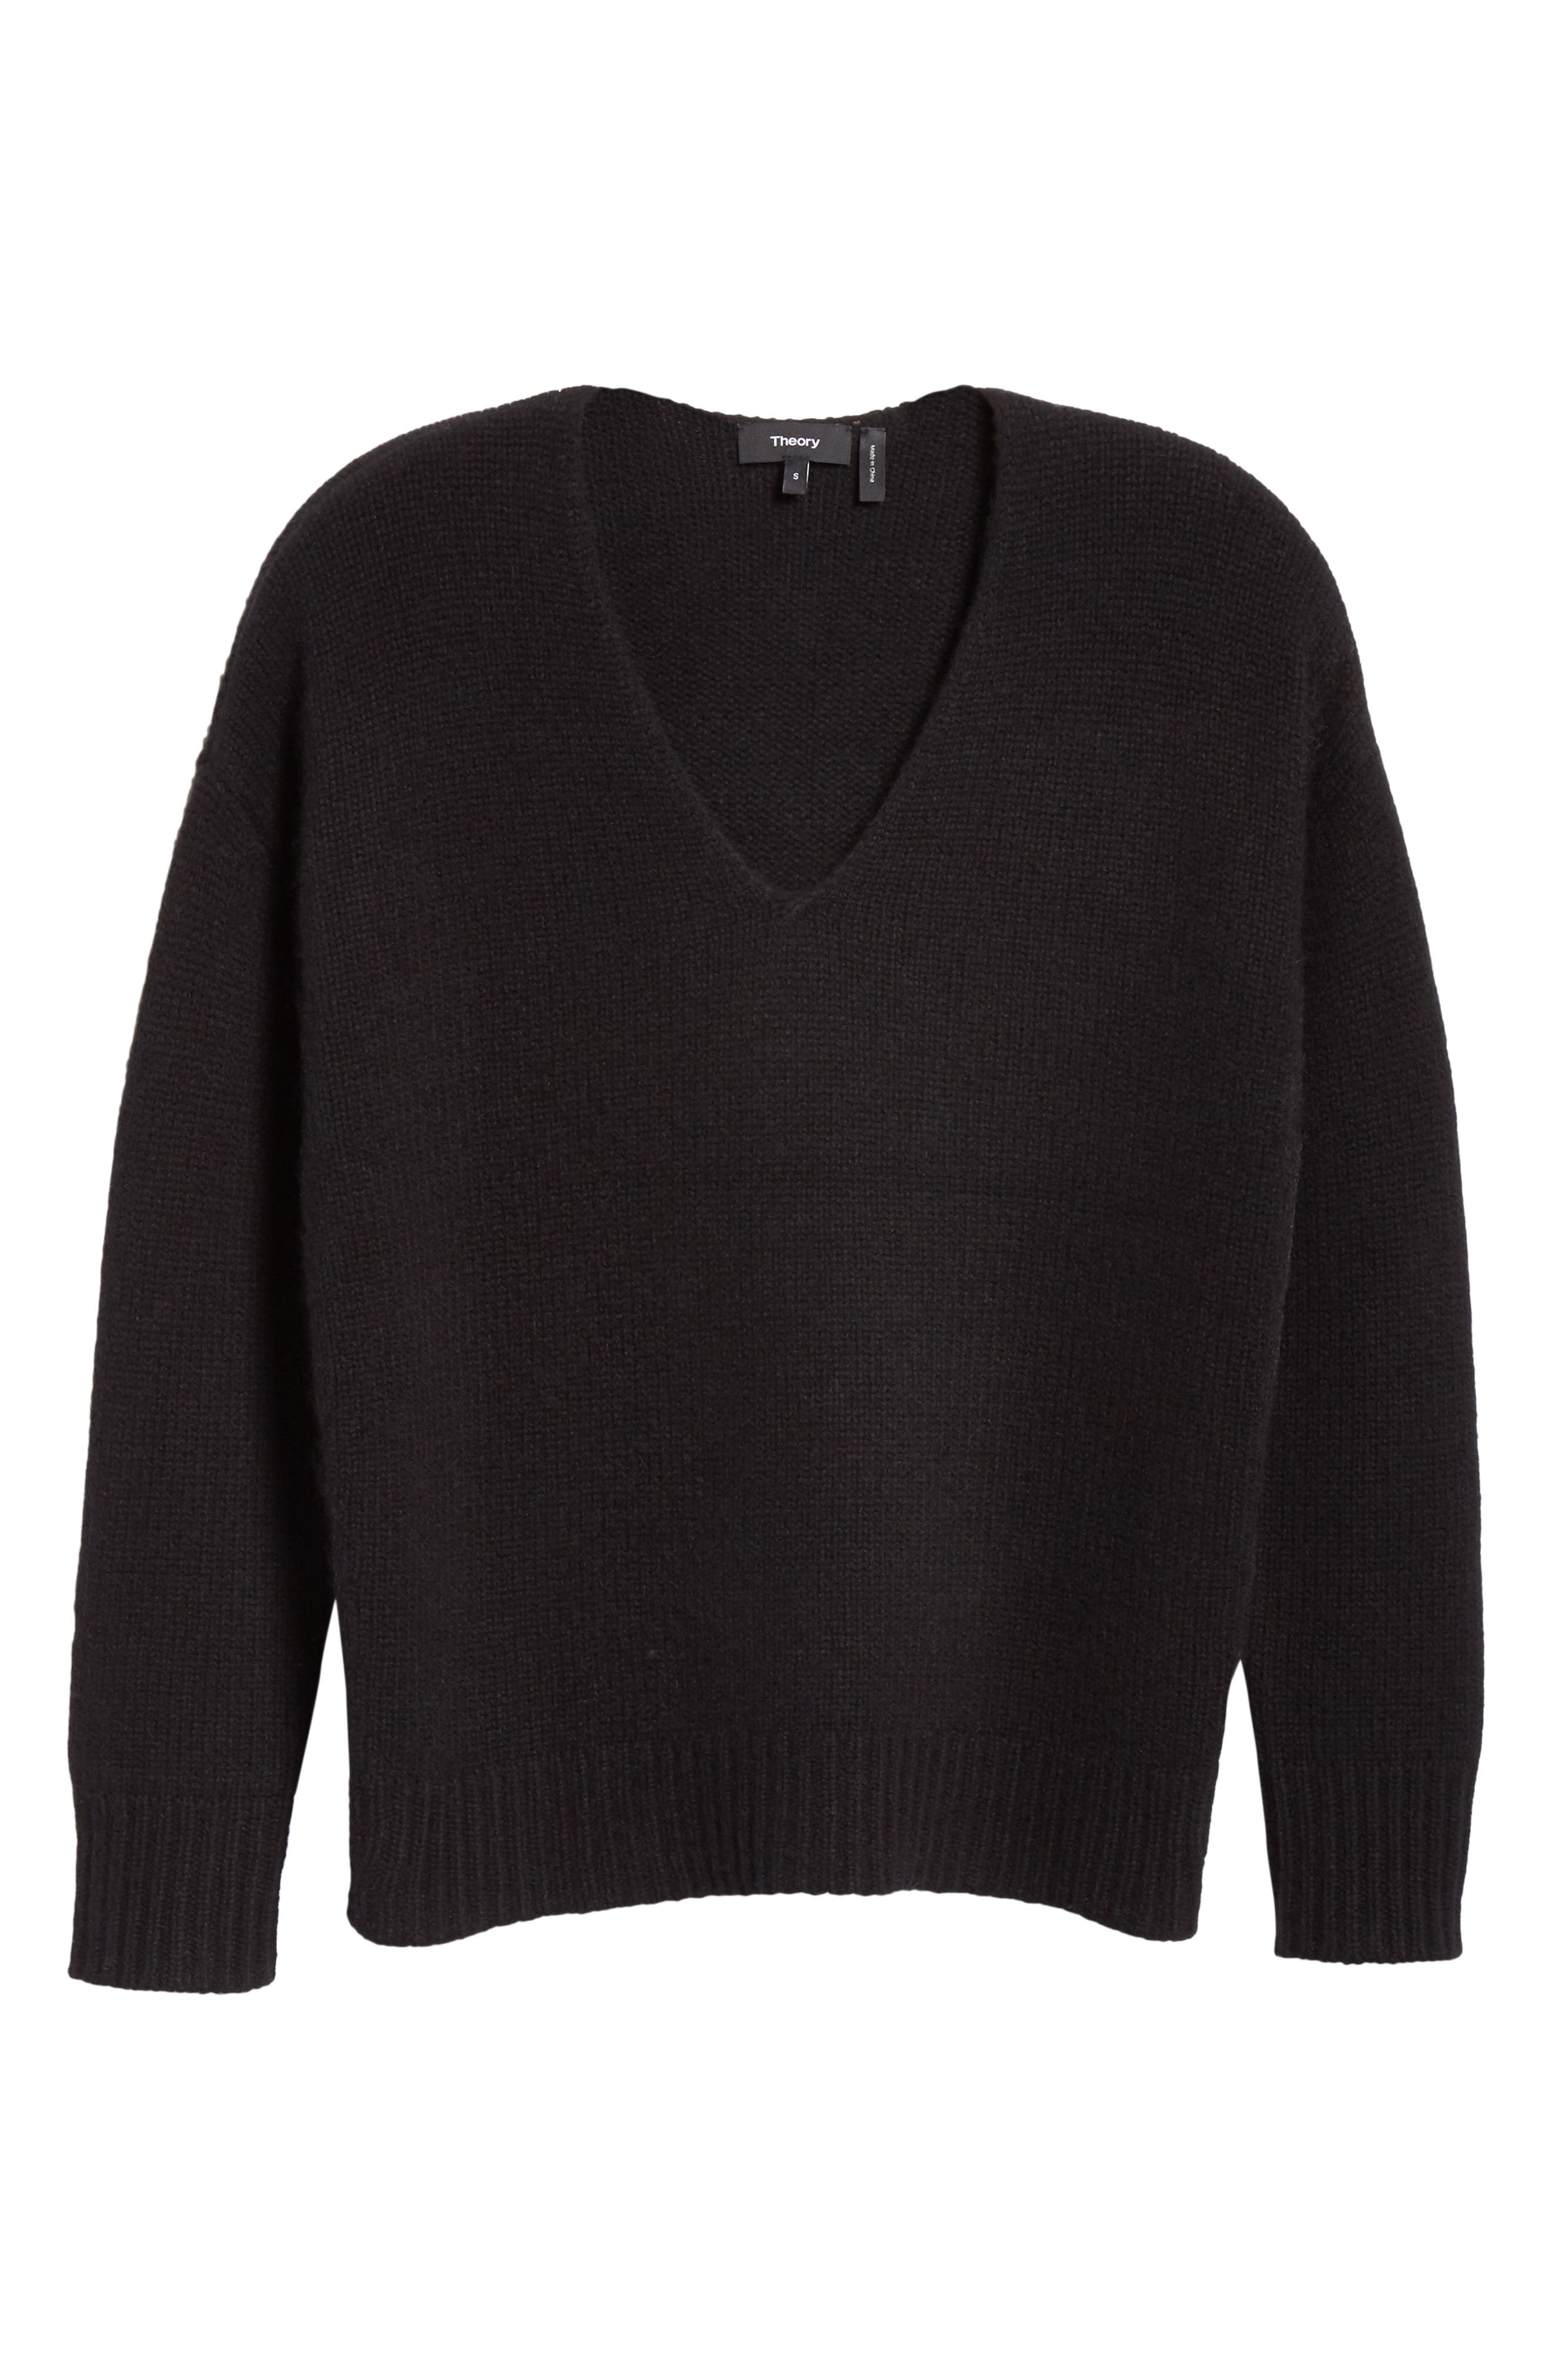 Relaxed Cashmere Sweater,                             Alternate thumbnail 6, color,                             BLACK